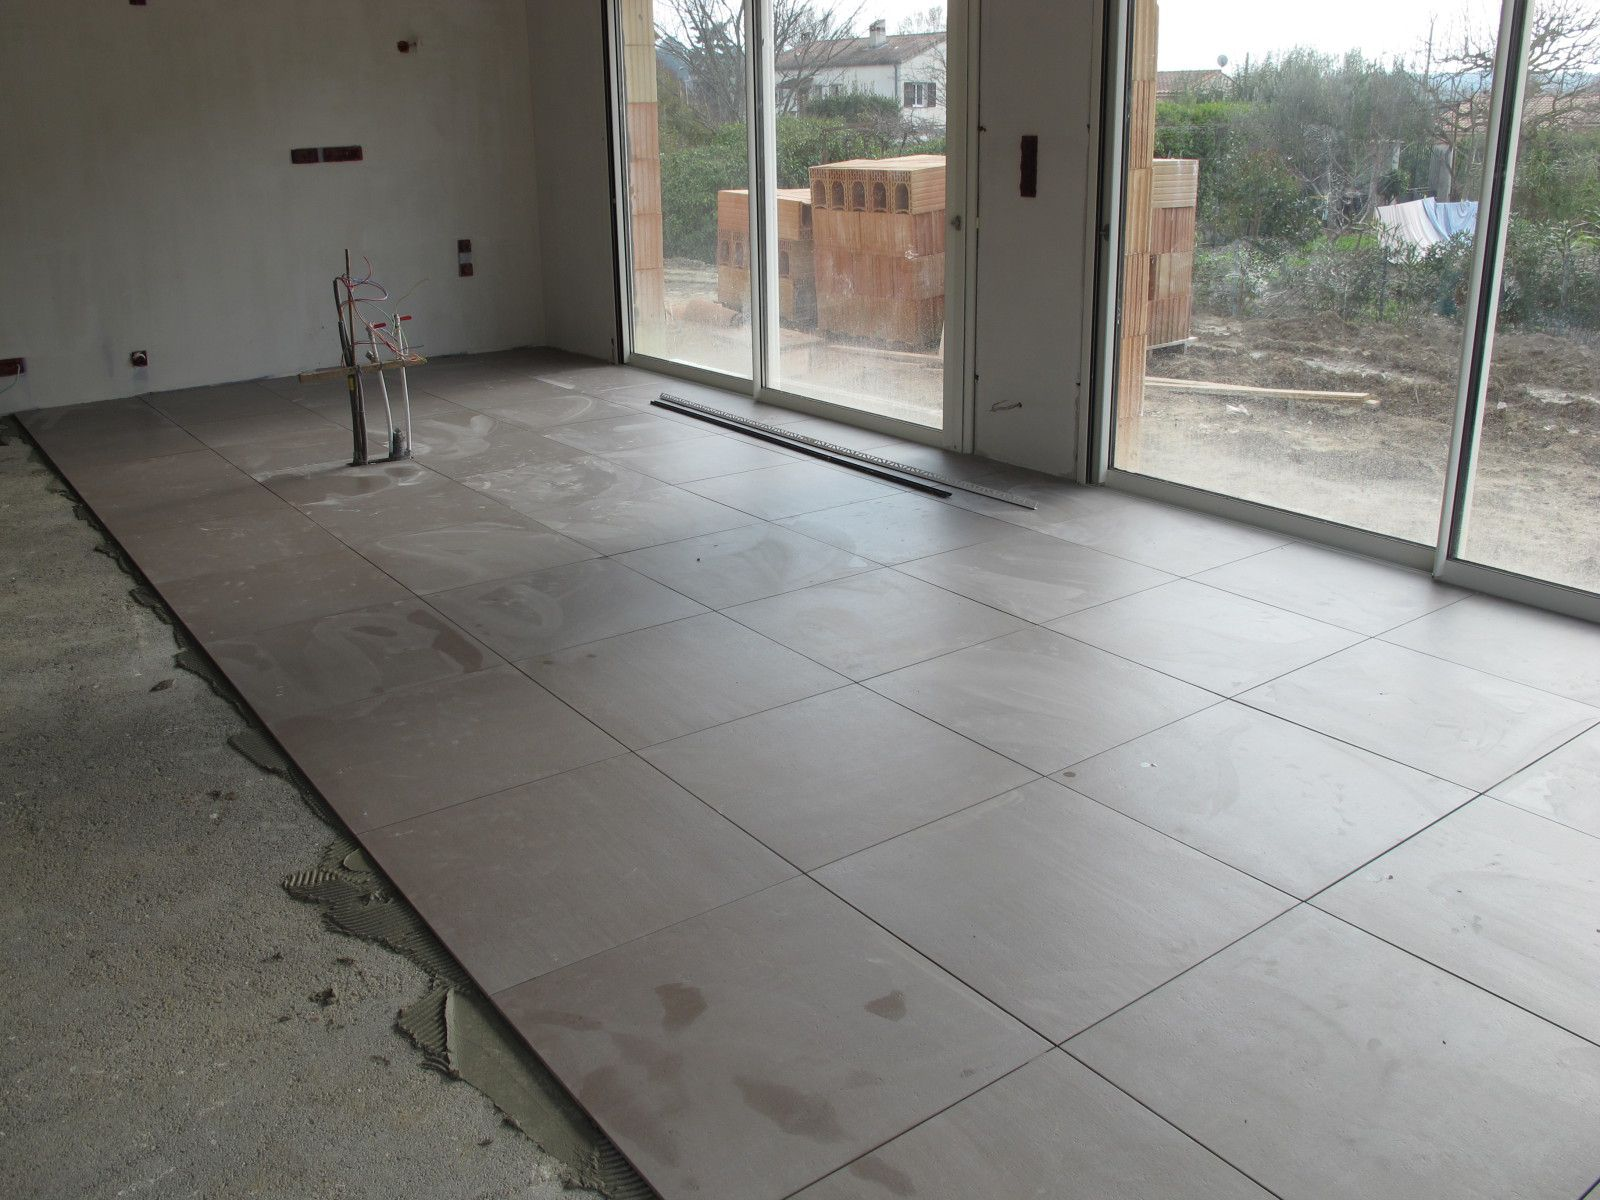 Carrelage suite et joints notre maison bbc for Photos carrelage